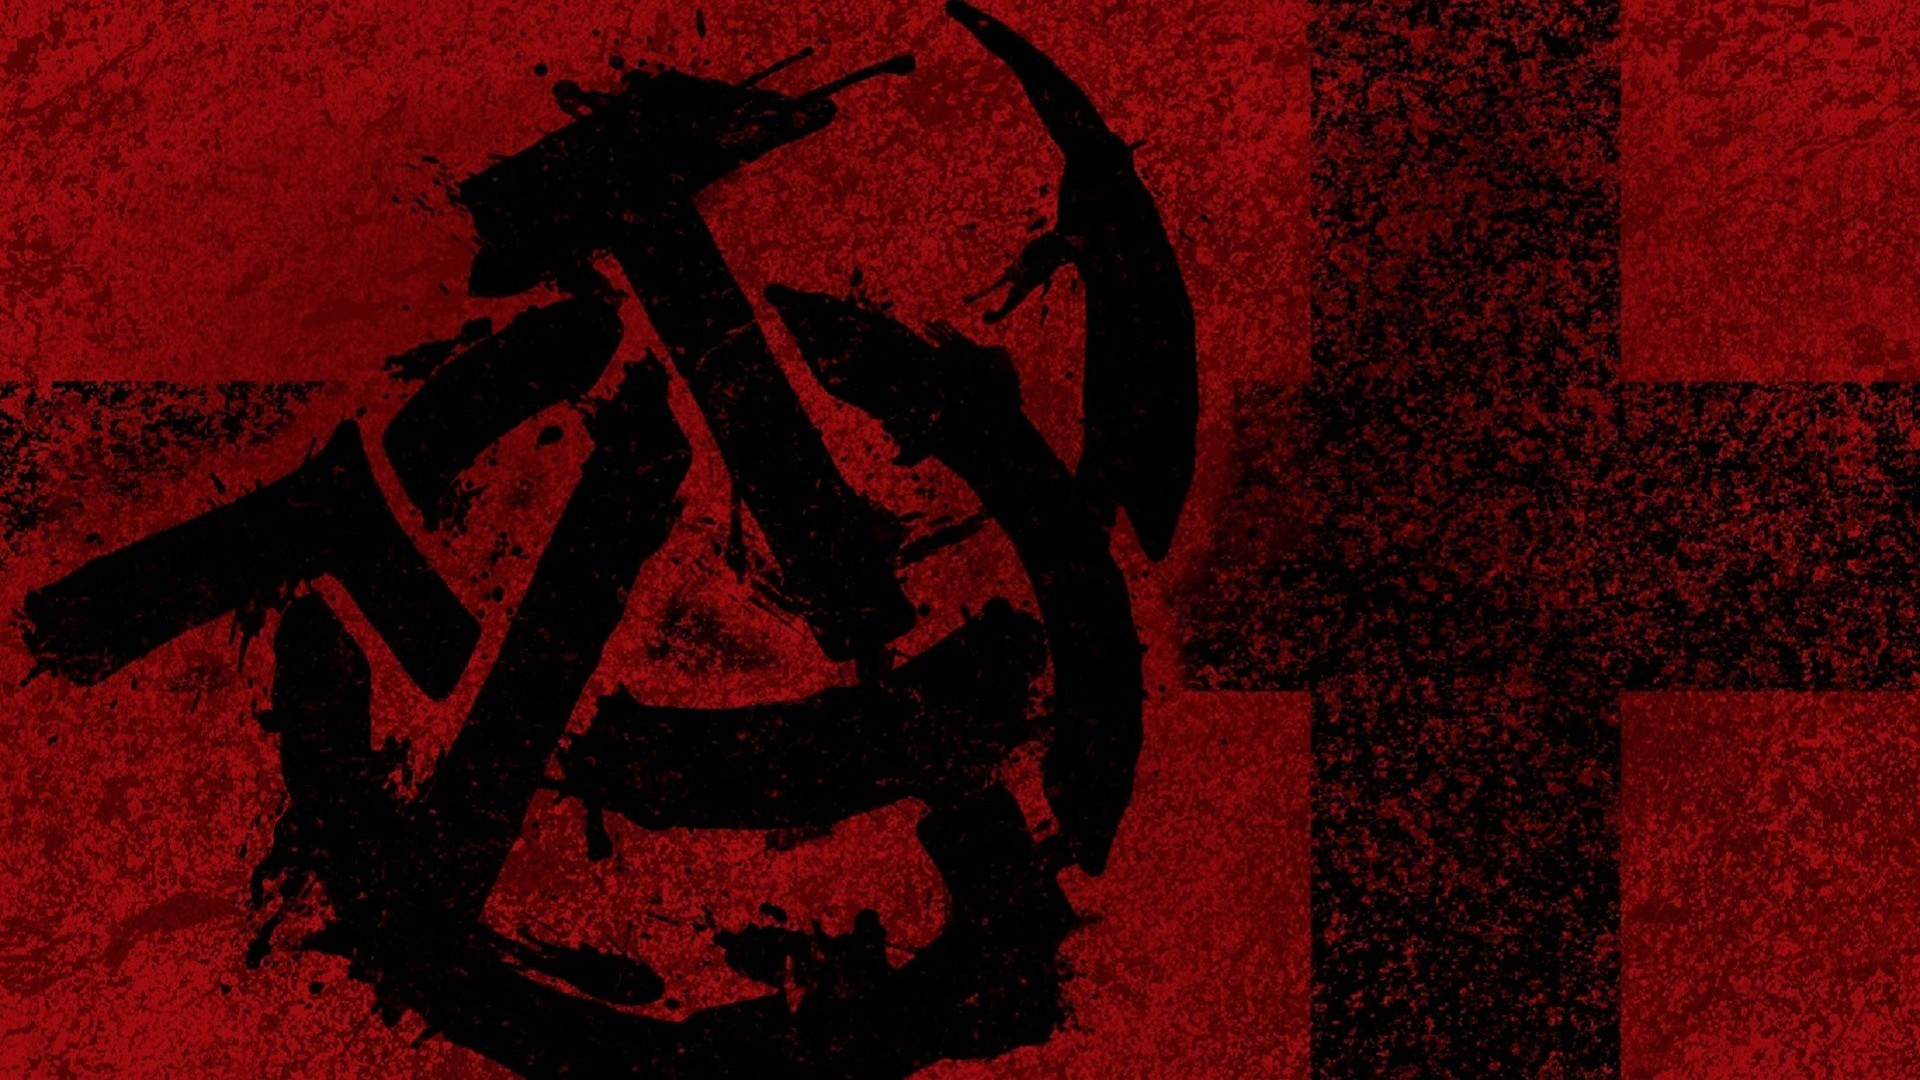 anarcho communist wallpapers - photo #8